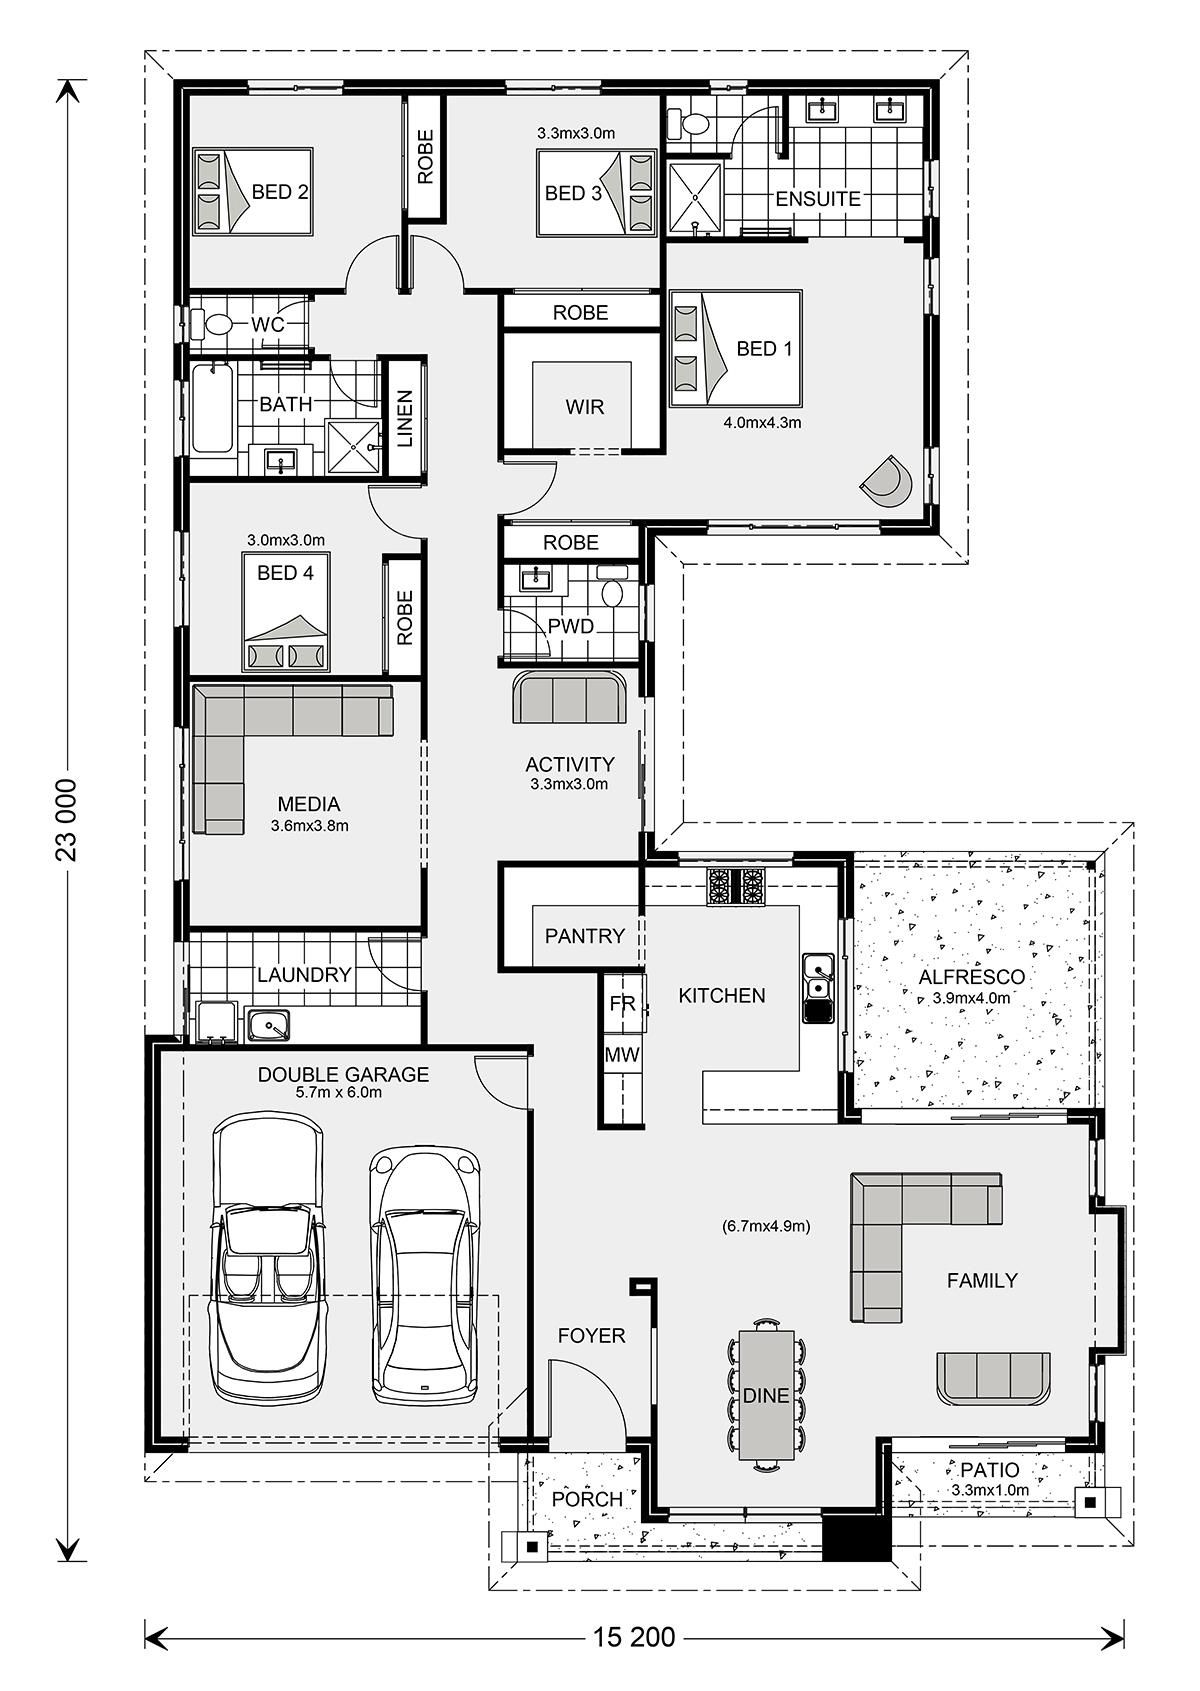 Lakeview 297 Home Designs In G J Gardner Homes House Plans And More New House Plans Dream House Plans